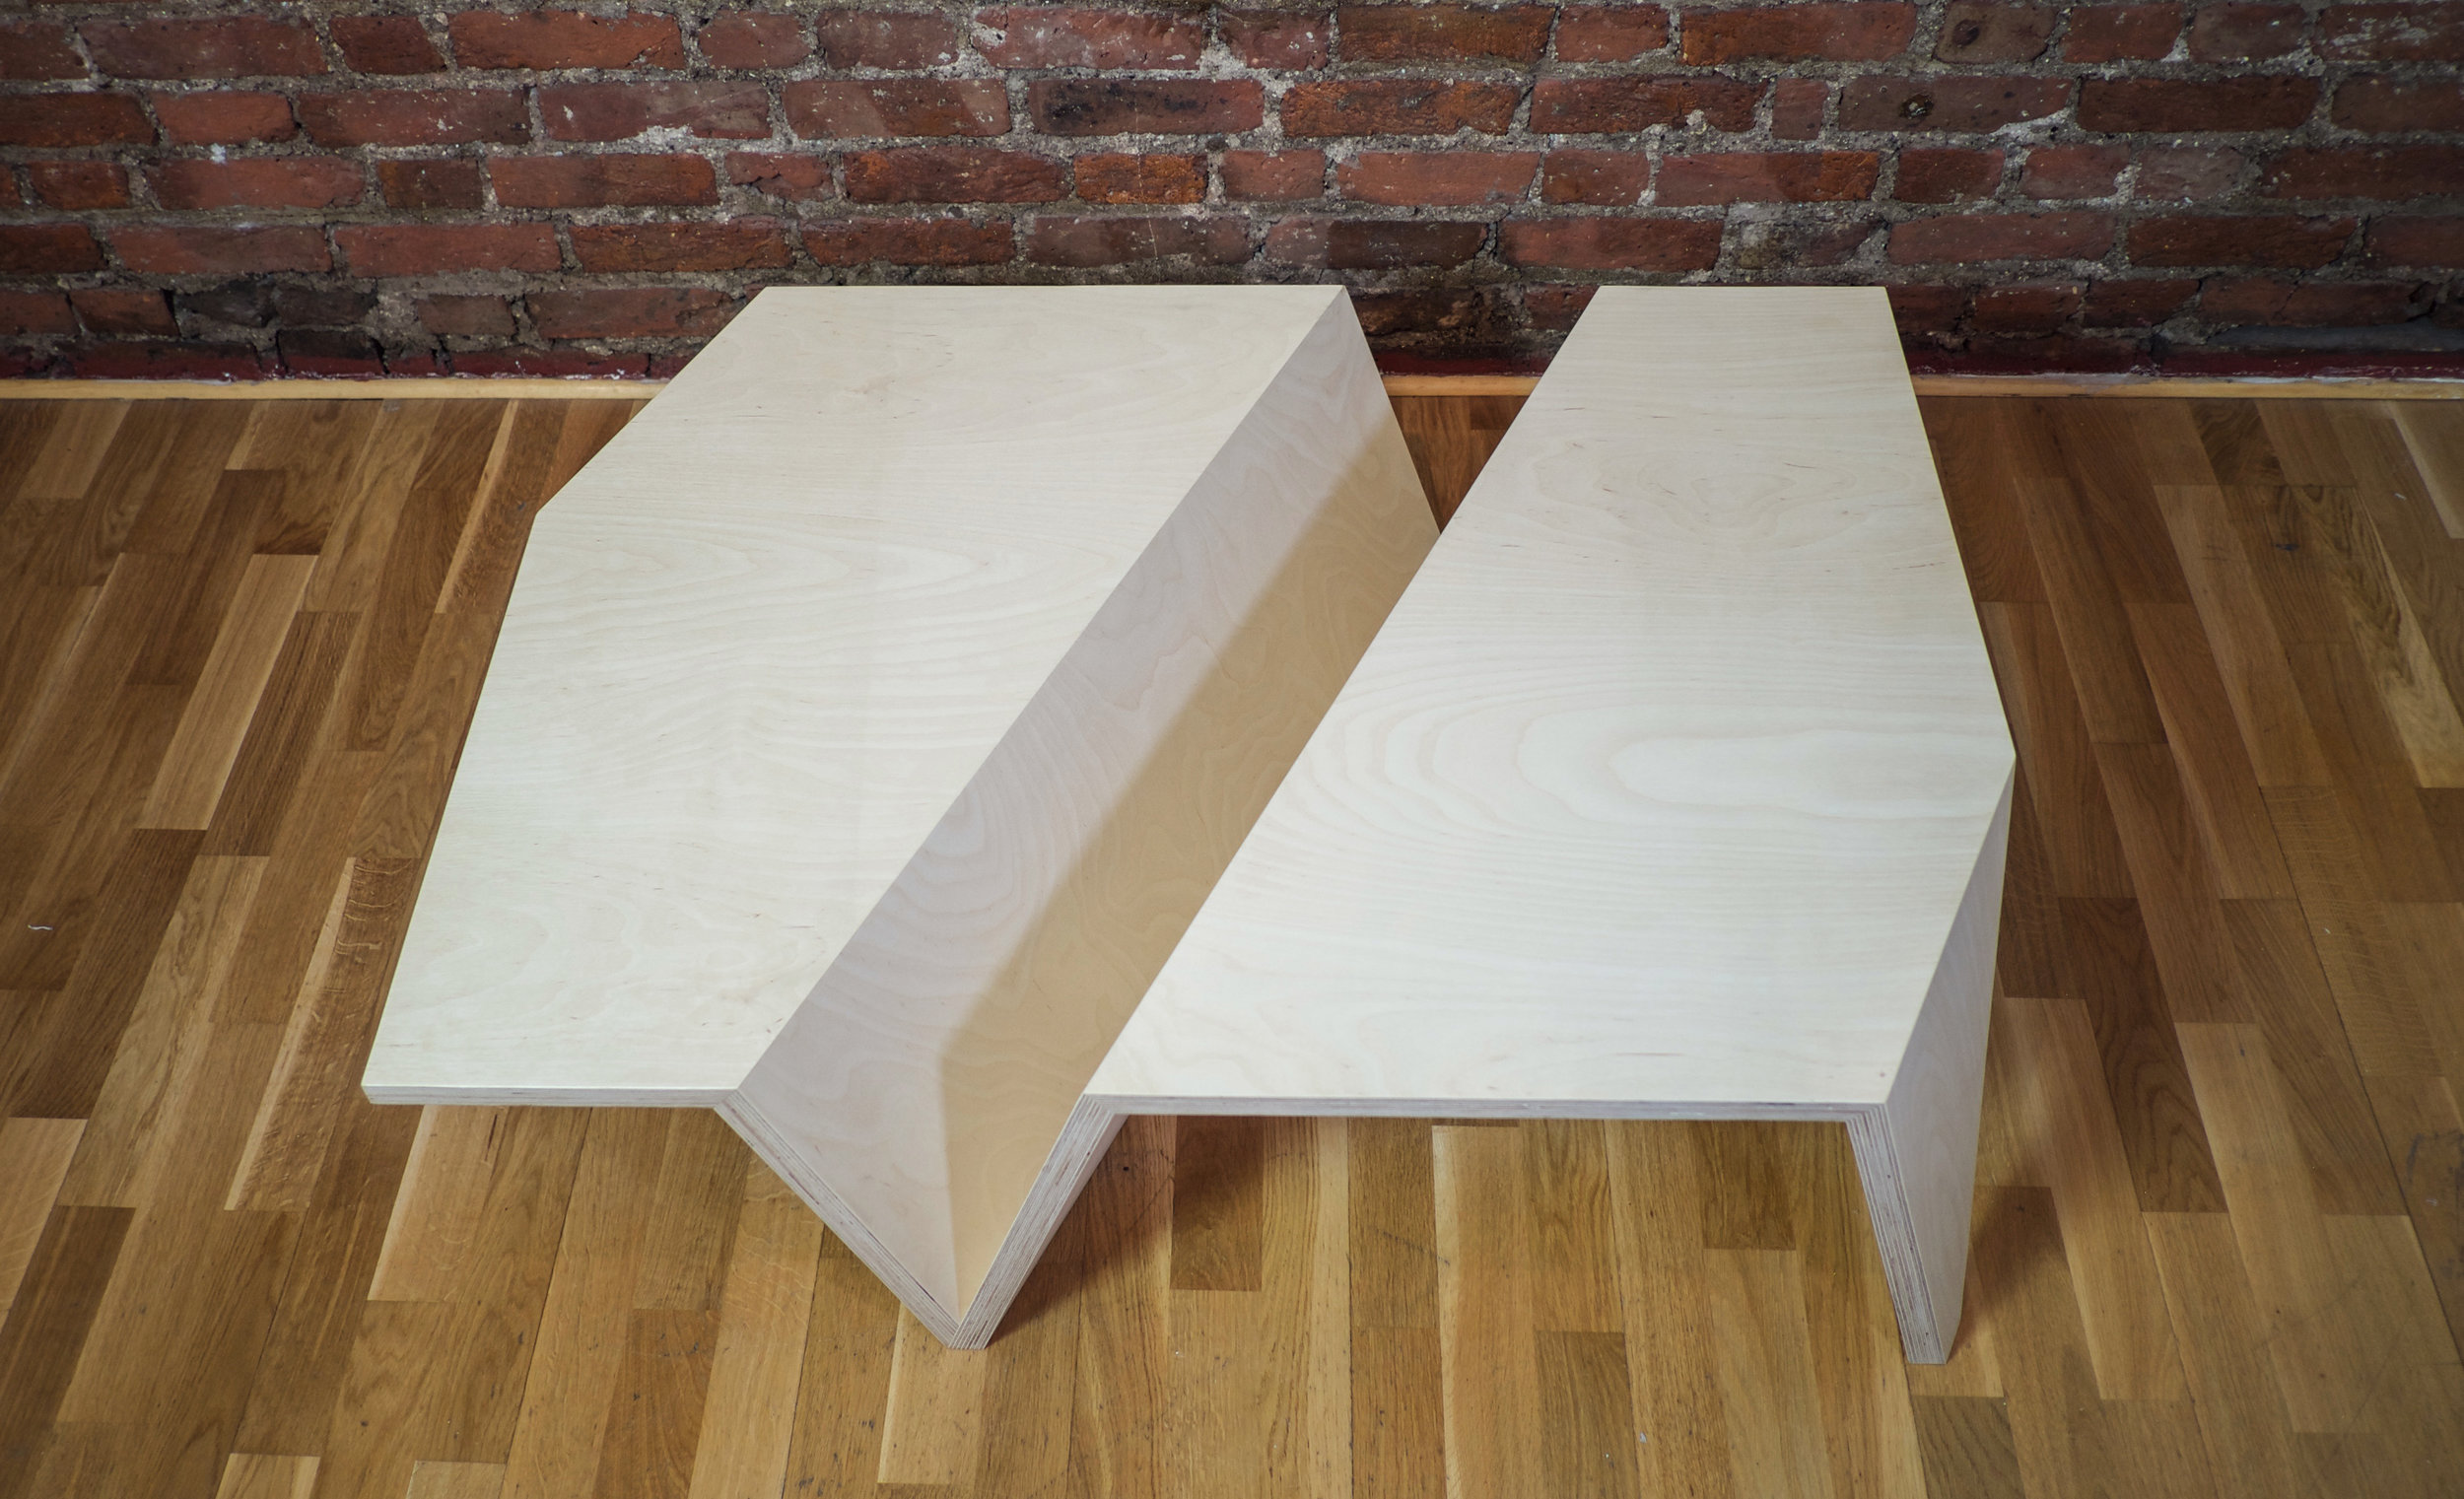 The Origami Low Coffee Table in Beech Ply - Top down view